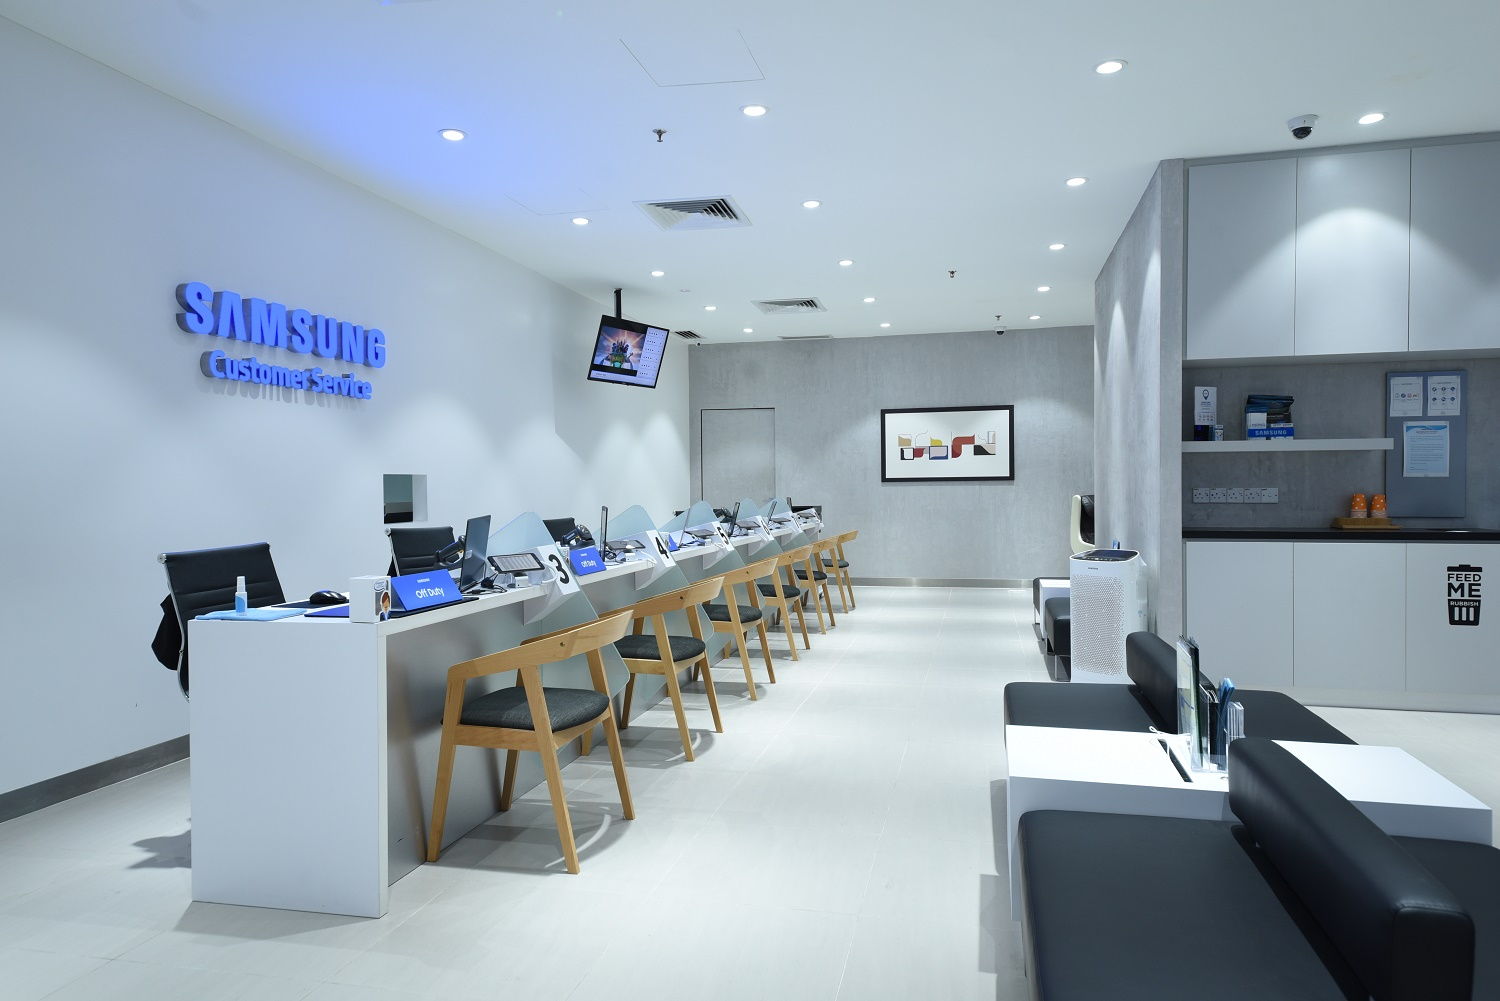 Samsung Re-opens Its New Concept Customer Care Centre In Low Yat